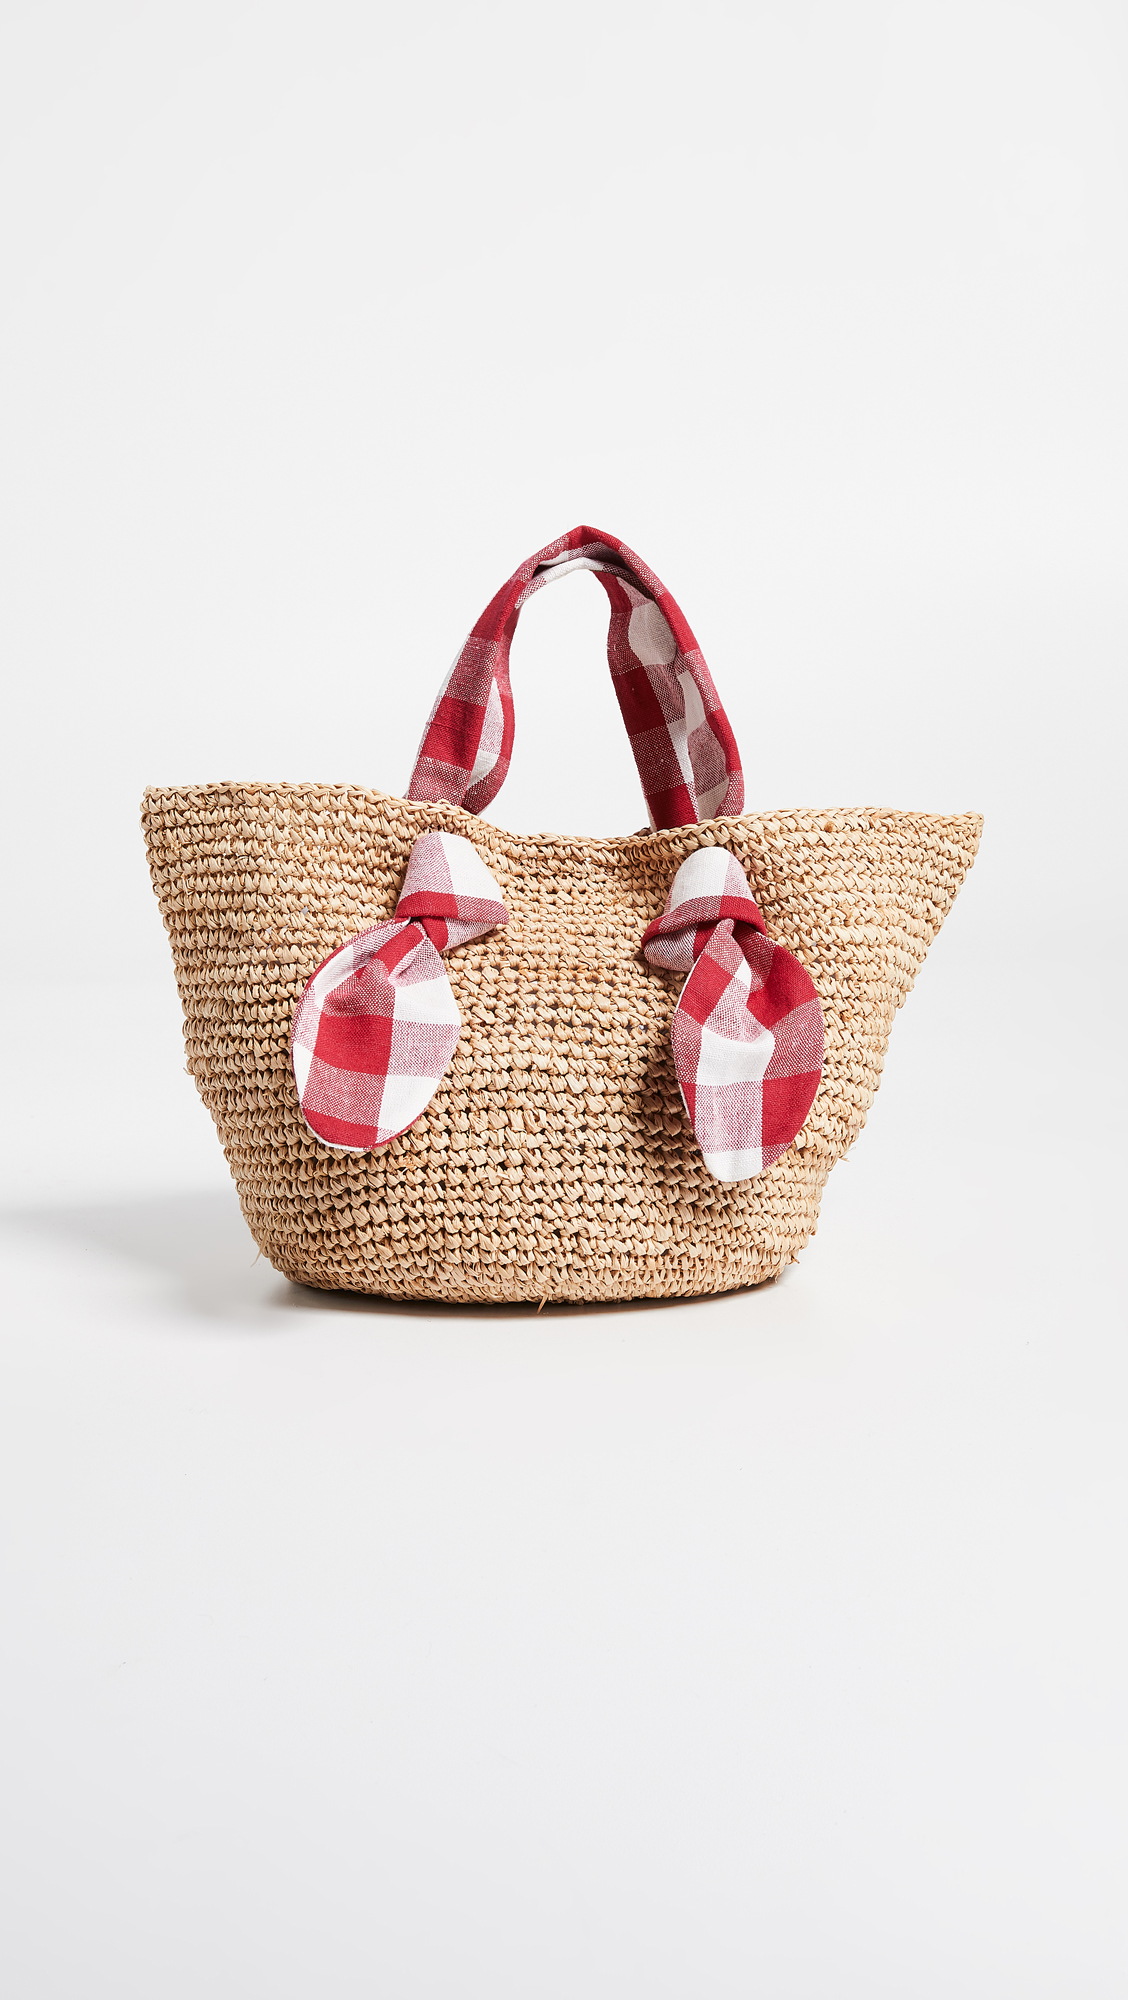 Hazel Straw Tote with Gingham Handles